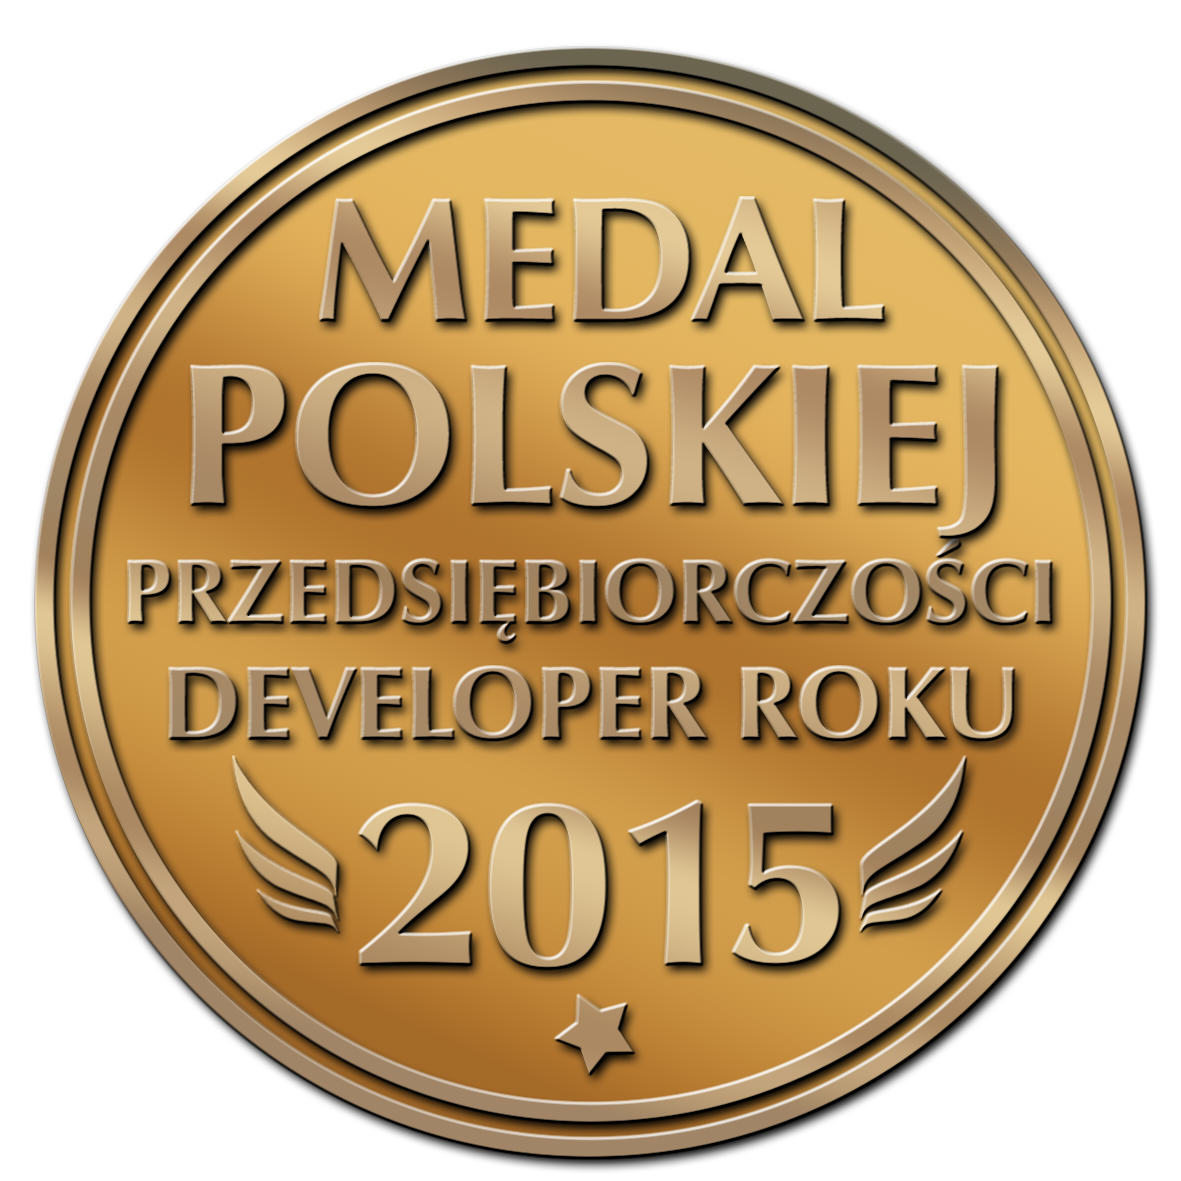 Developer Roku 2015